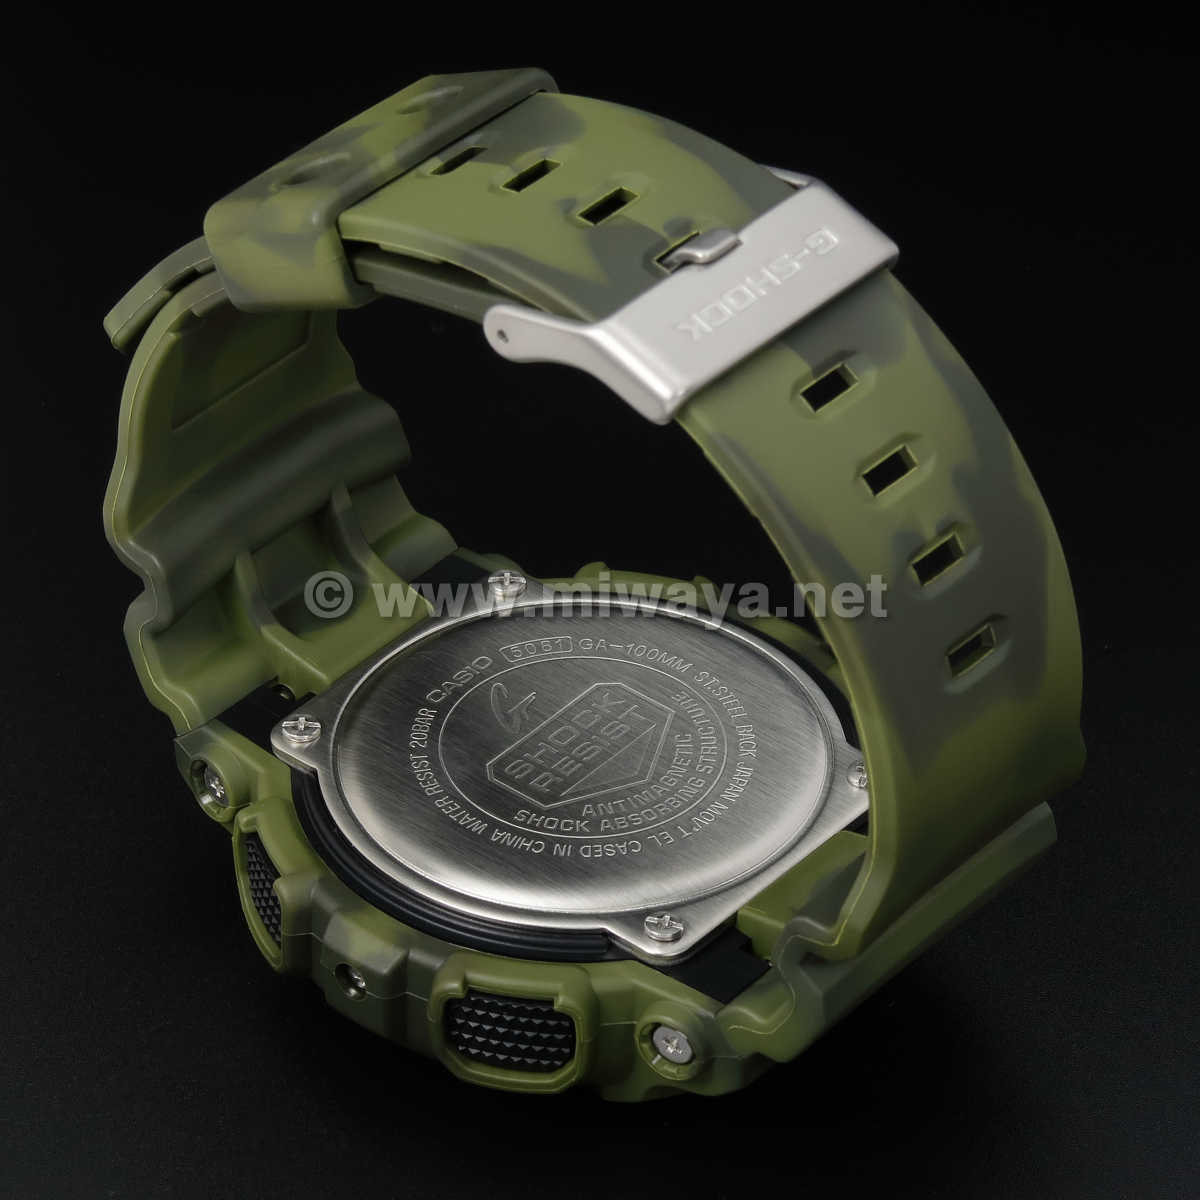 【G-SHOCK】GA-100MM-3AJF